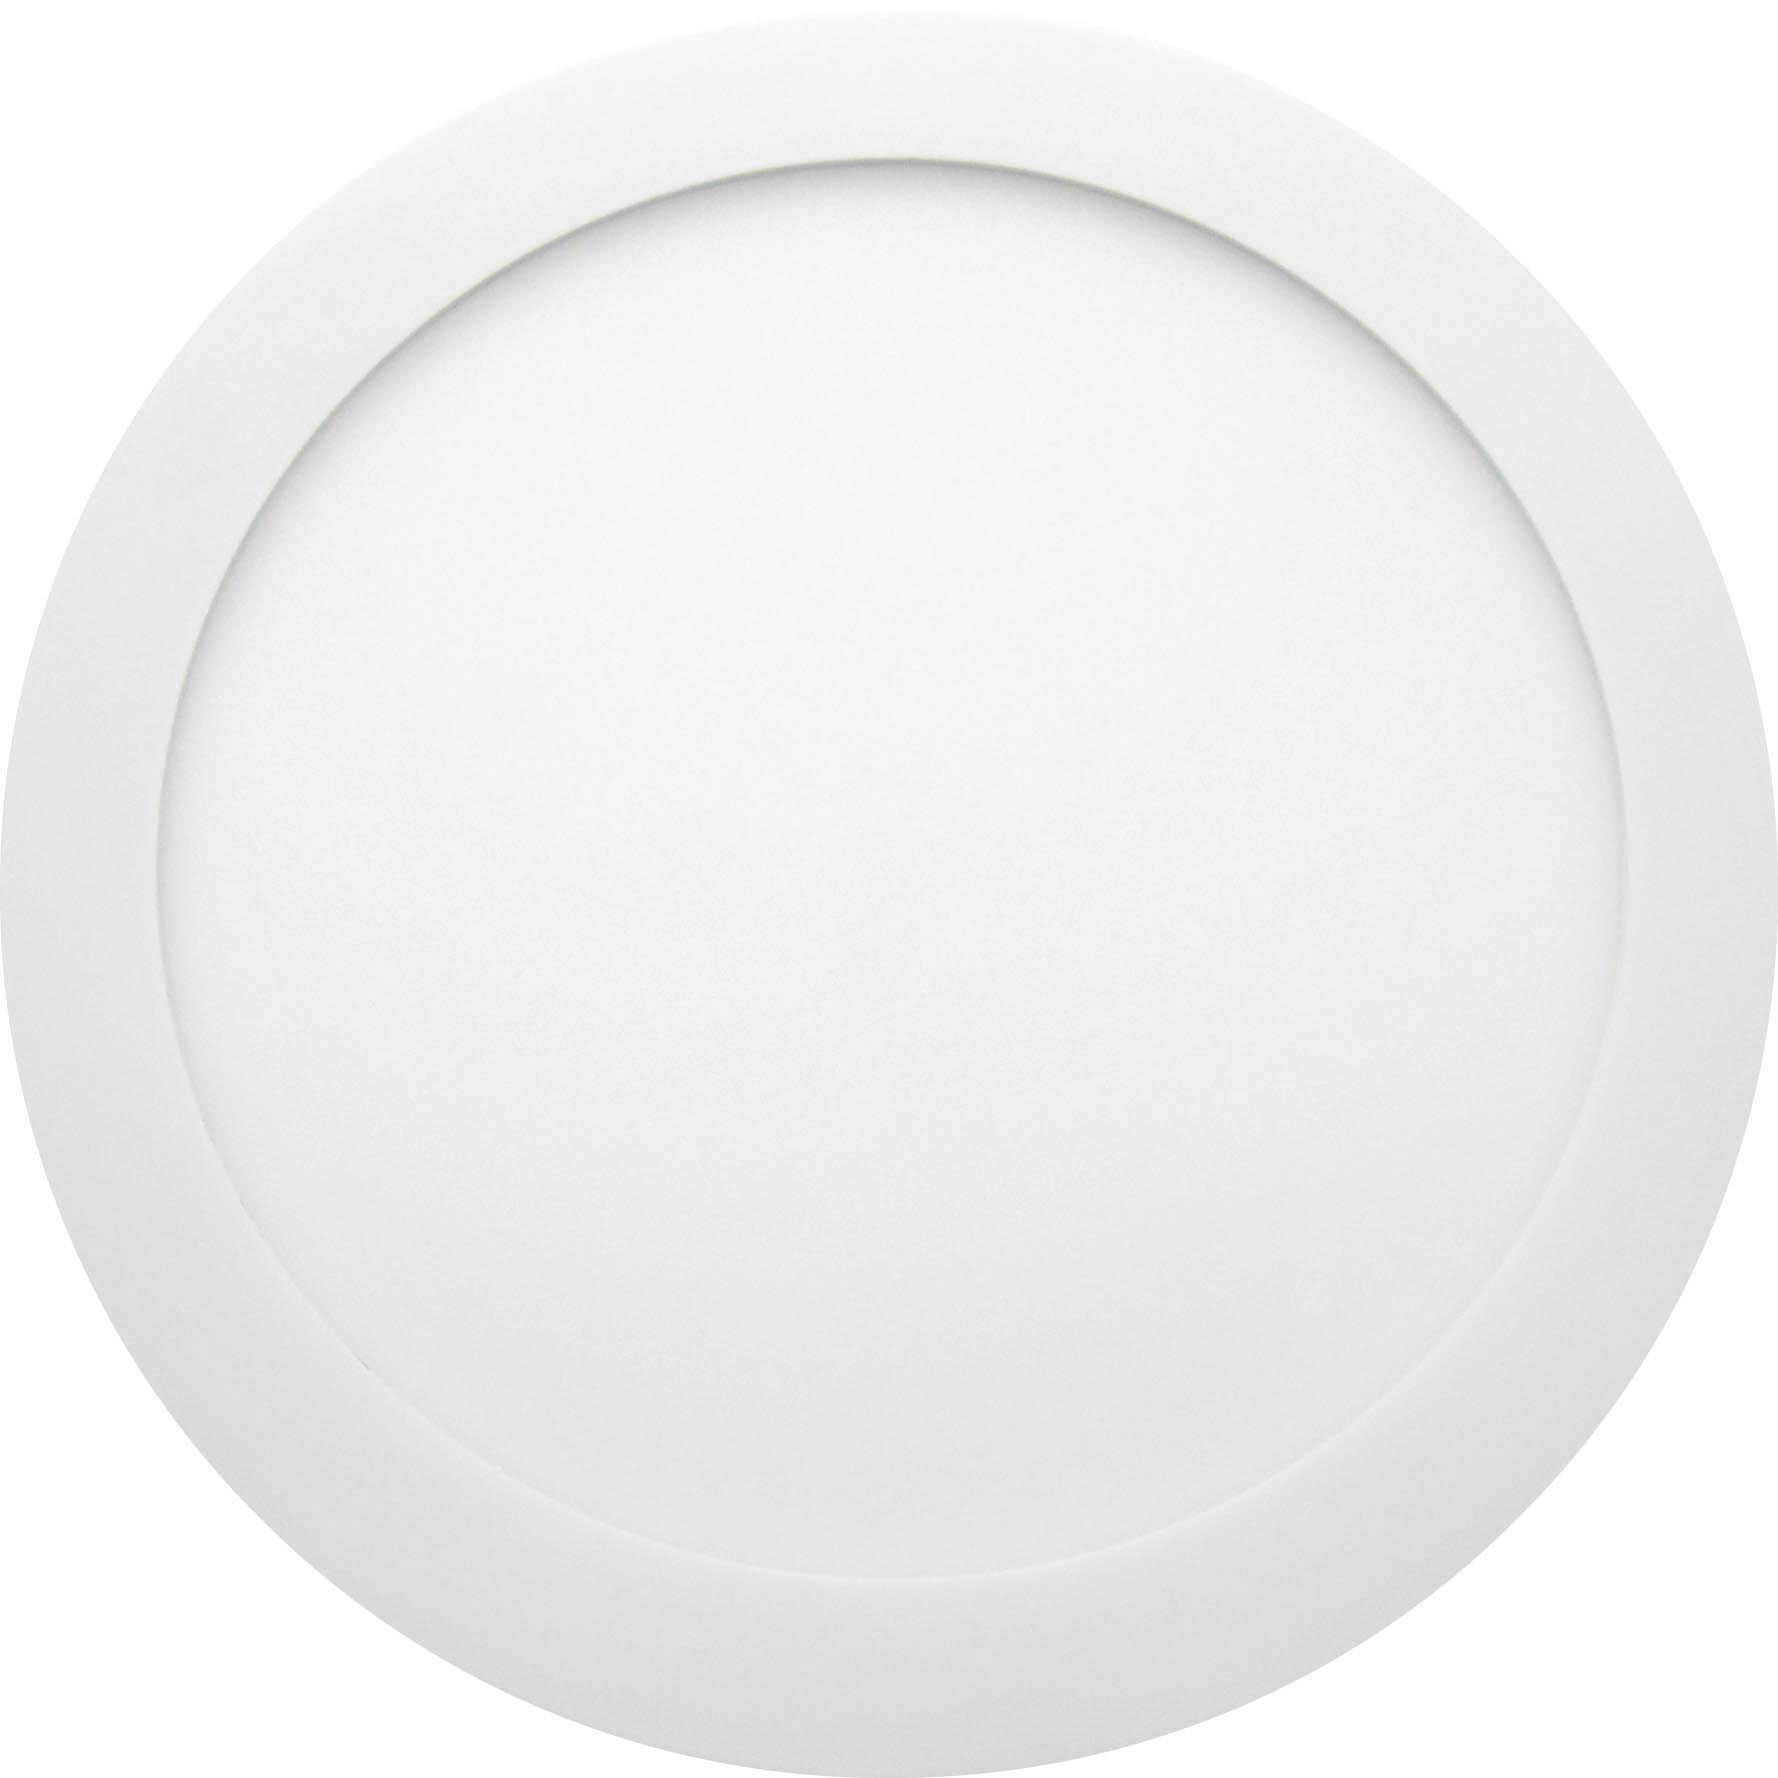 BL LED PANEL 240MM 18W 840 ROUND ND EM3 50K NON DIMMABLE ARIAL EMERGENCY